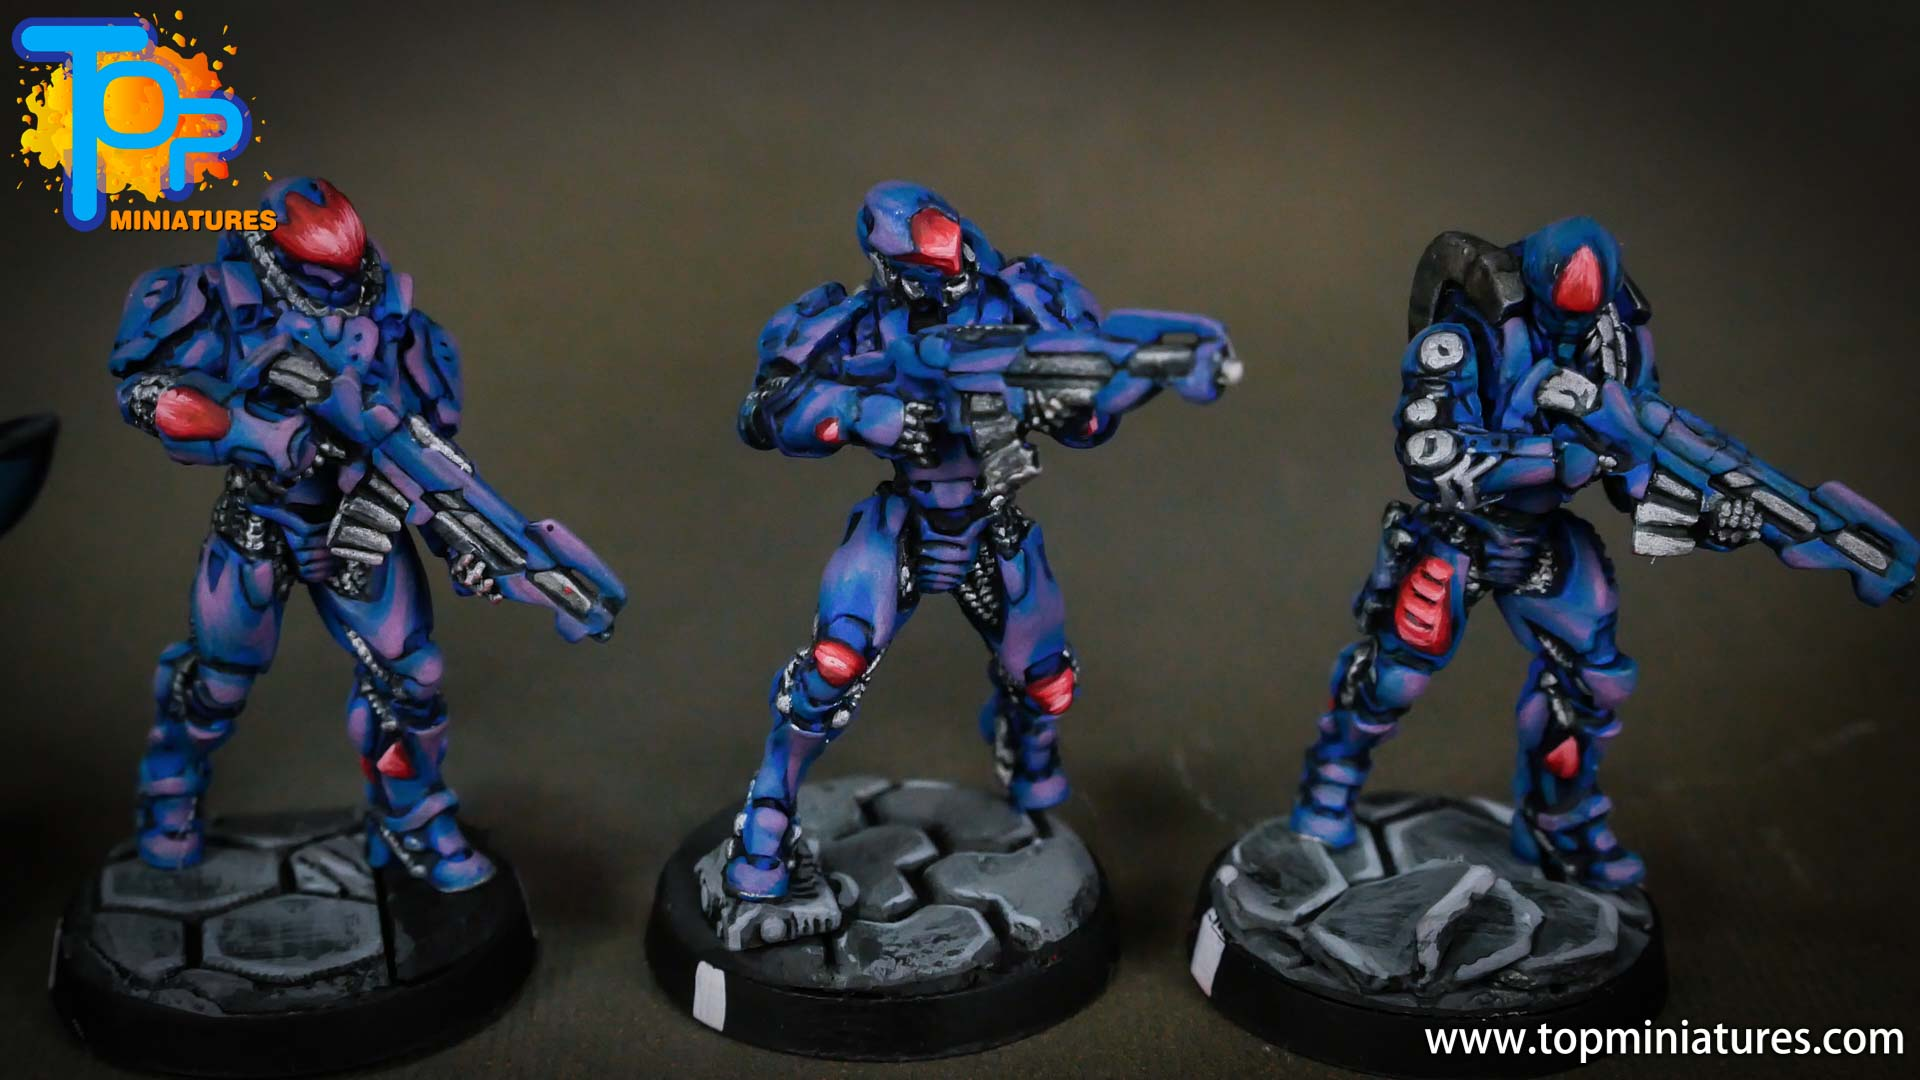 infinity yu jing Imperial Service (5)